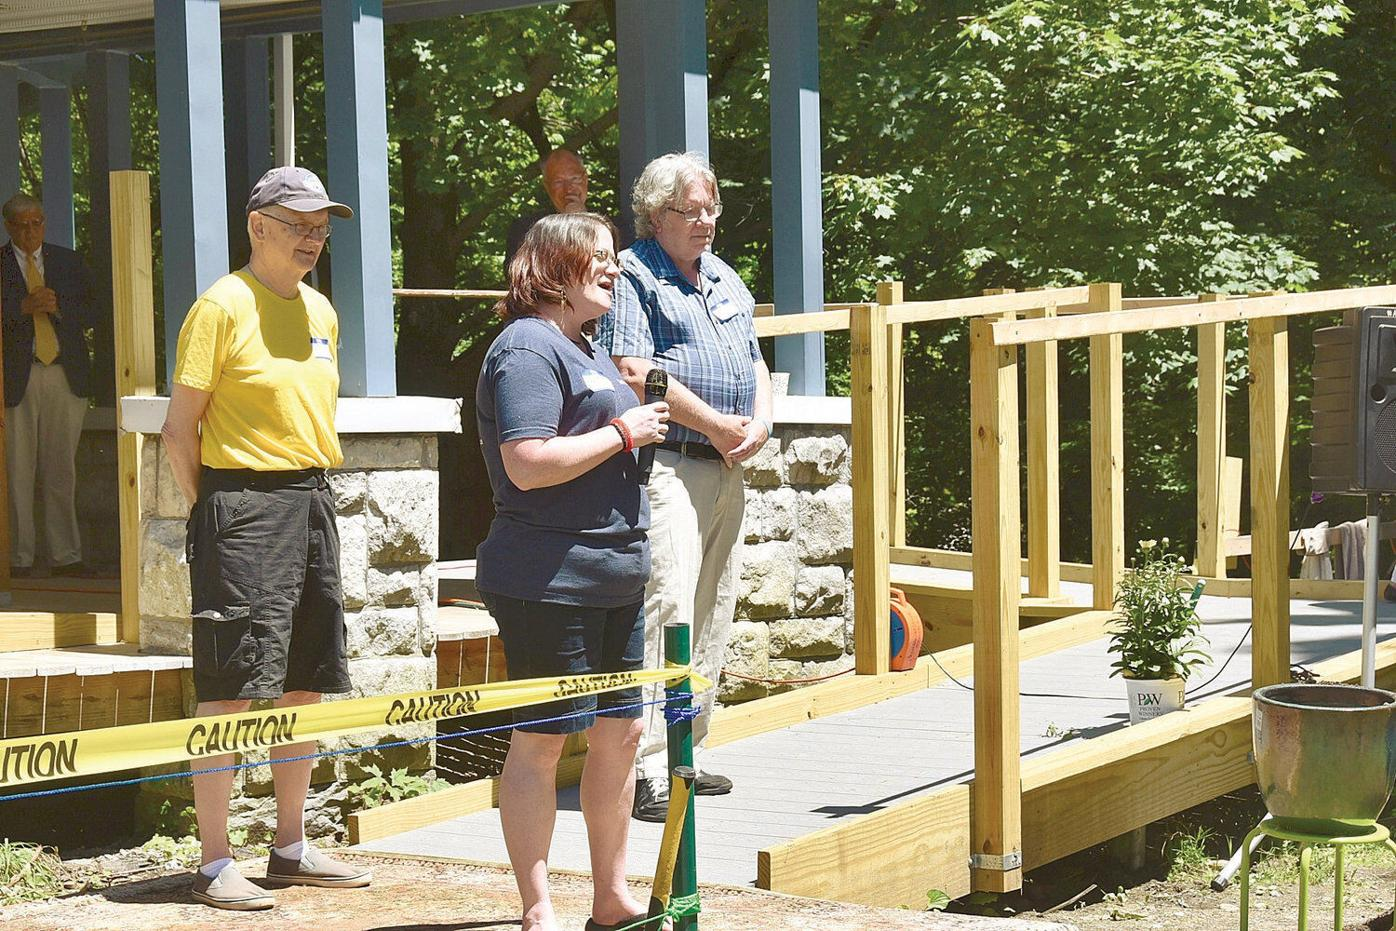 Three years after fire, Louison House homeless shelter rises from the ashes